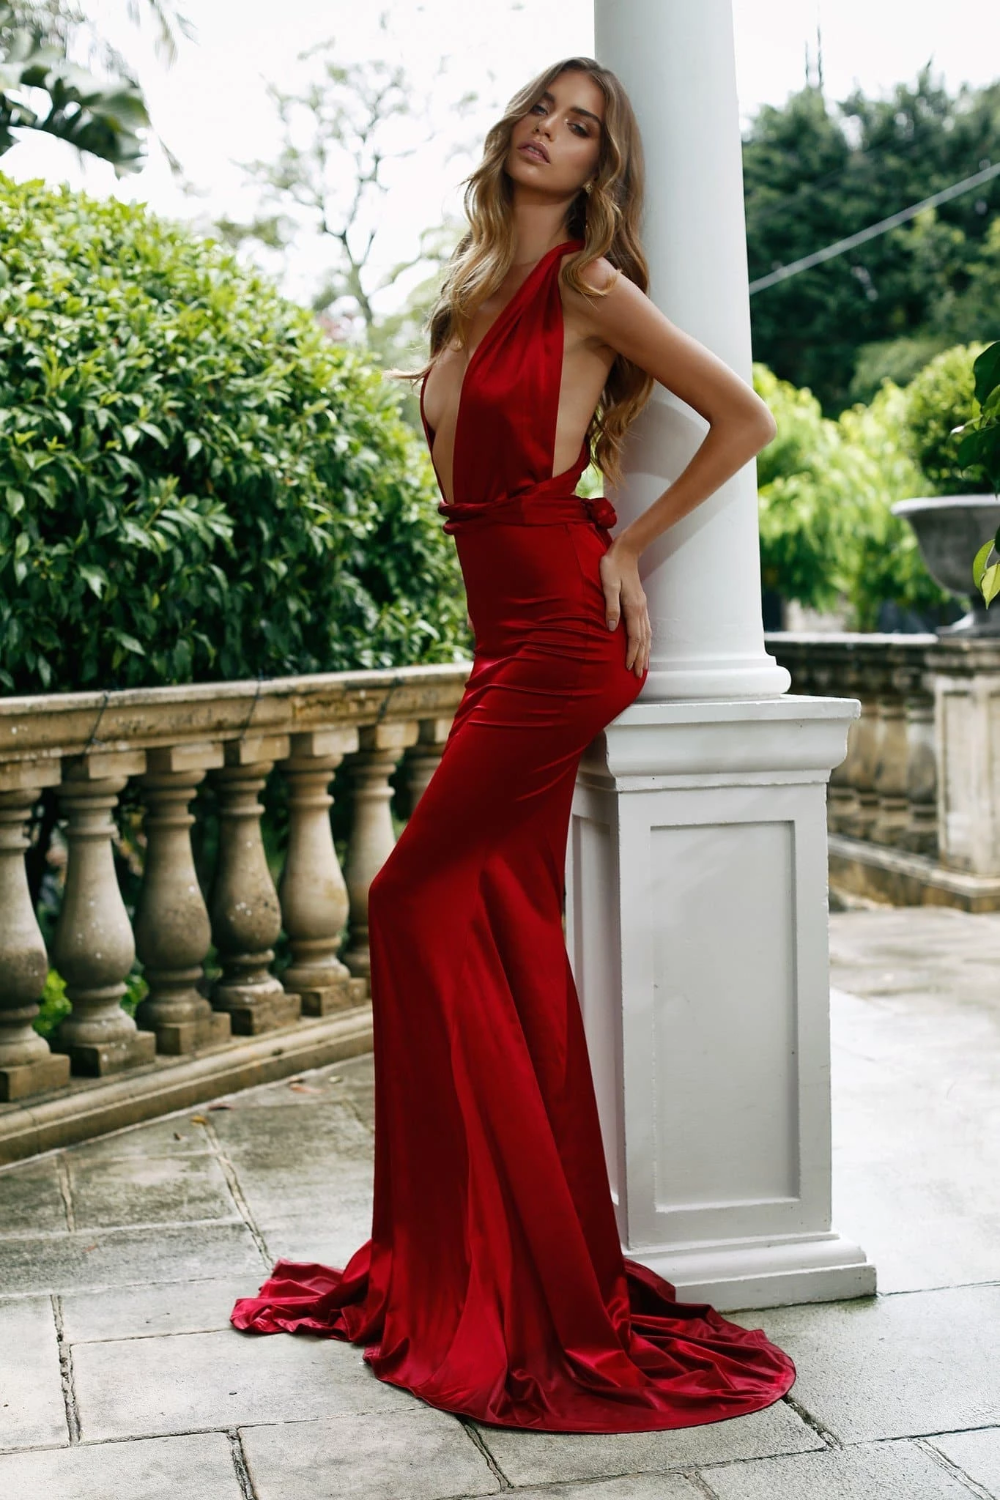 Lena Satin Gown Wine Red Red Silk Dress Beautiful Dresses Gowns [ 1500 x 1000 Pixel ]